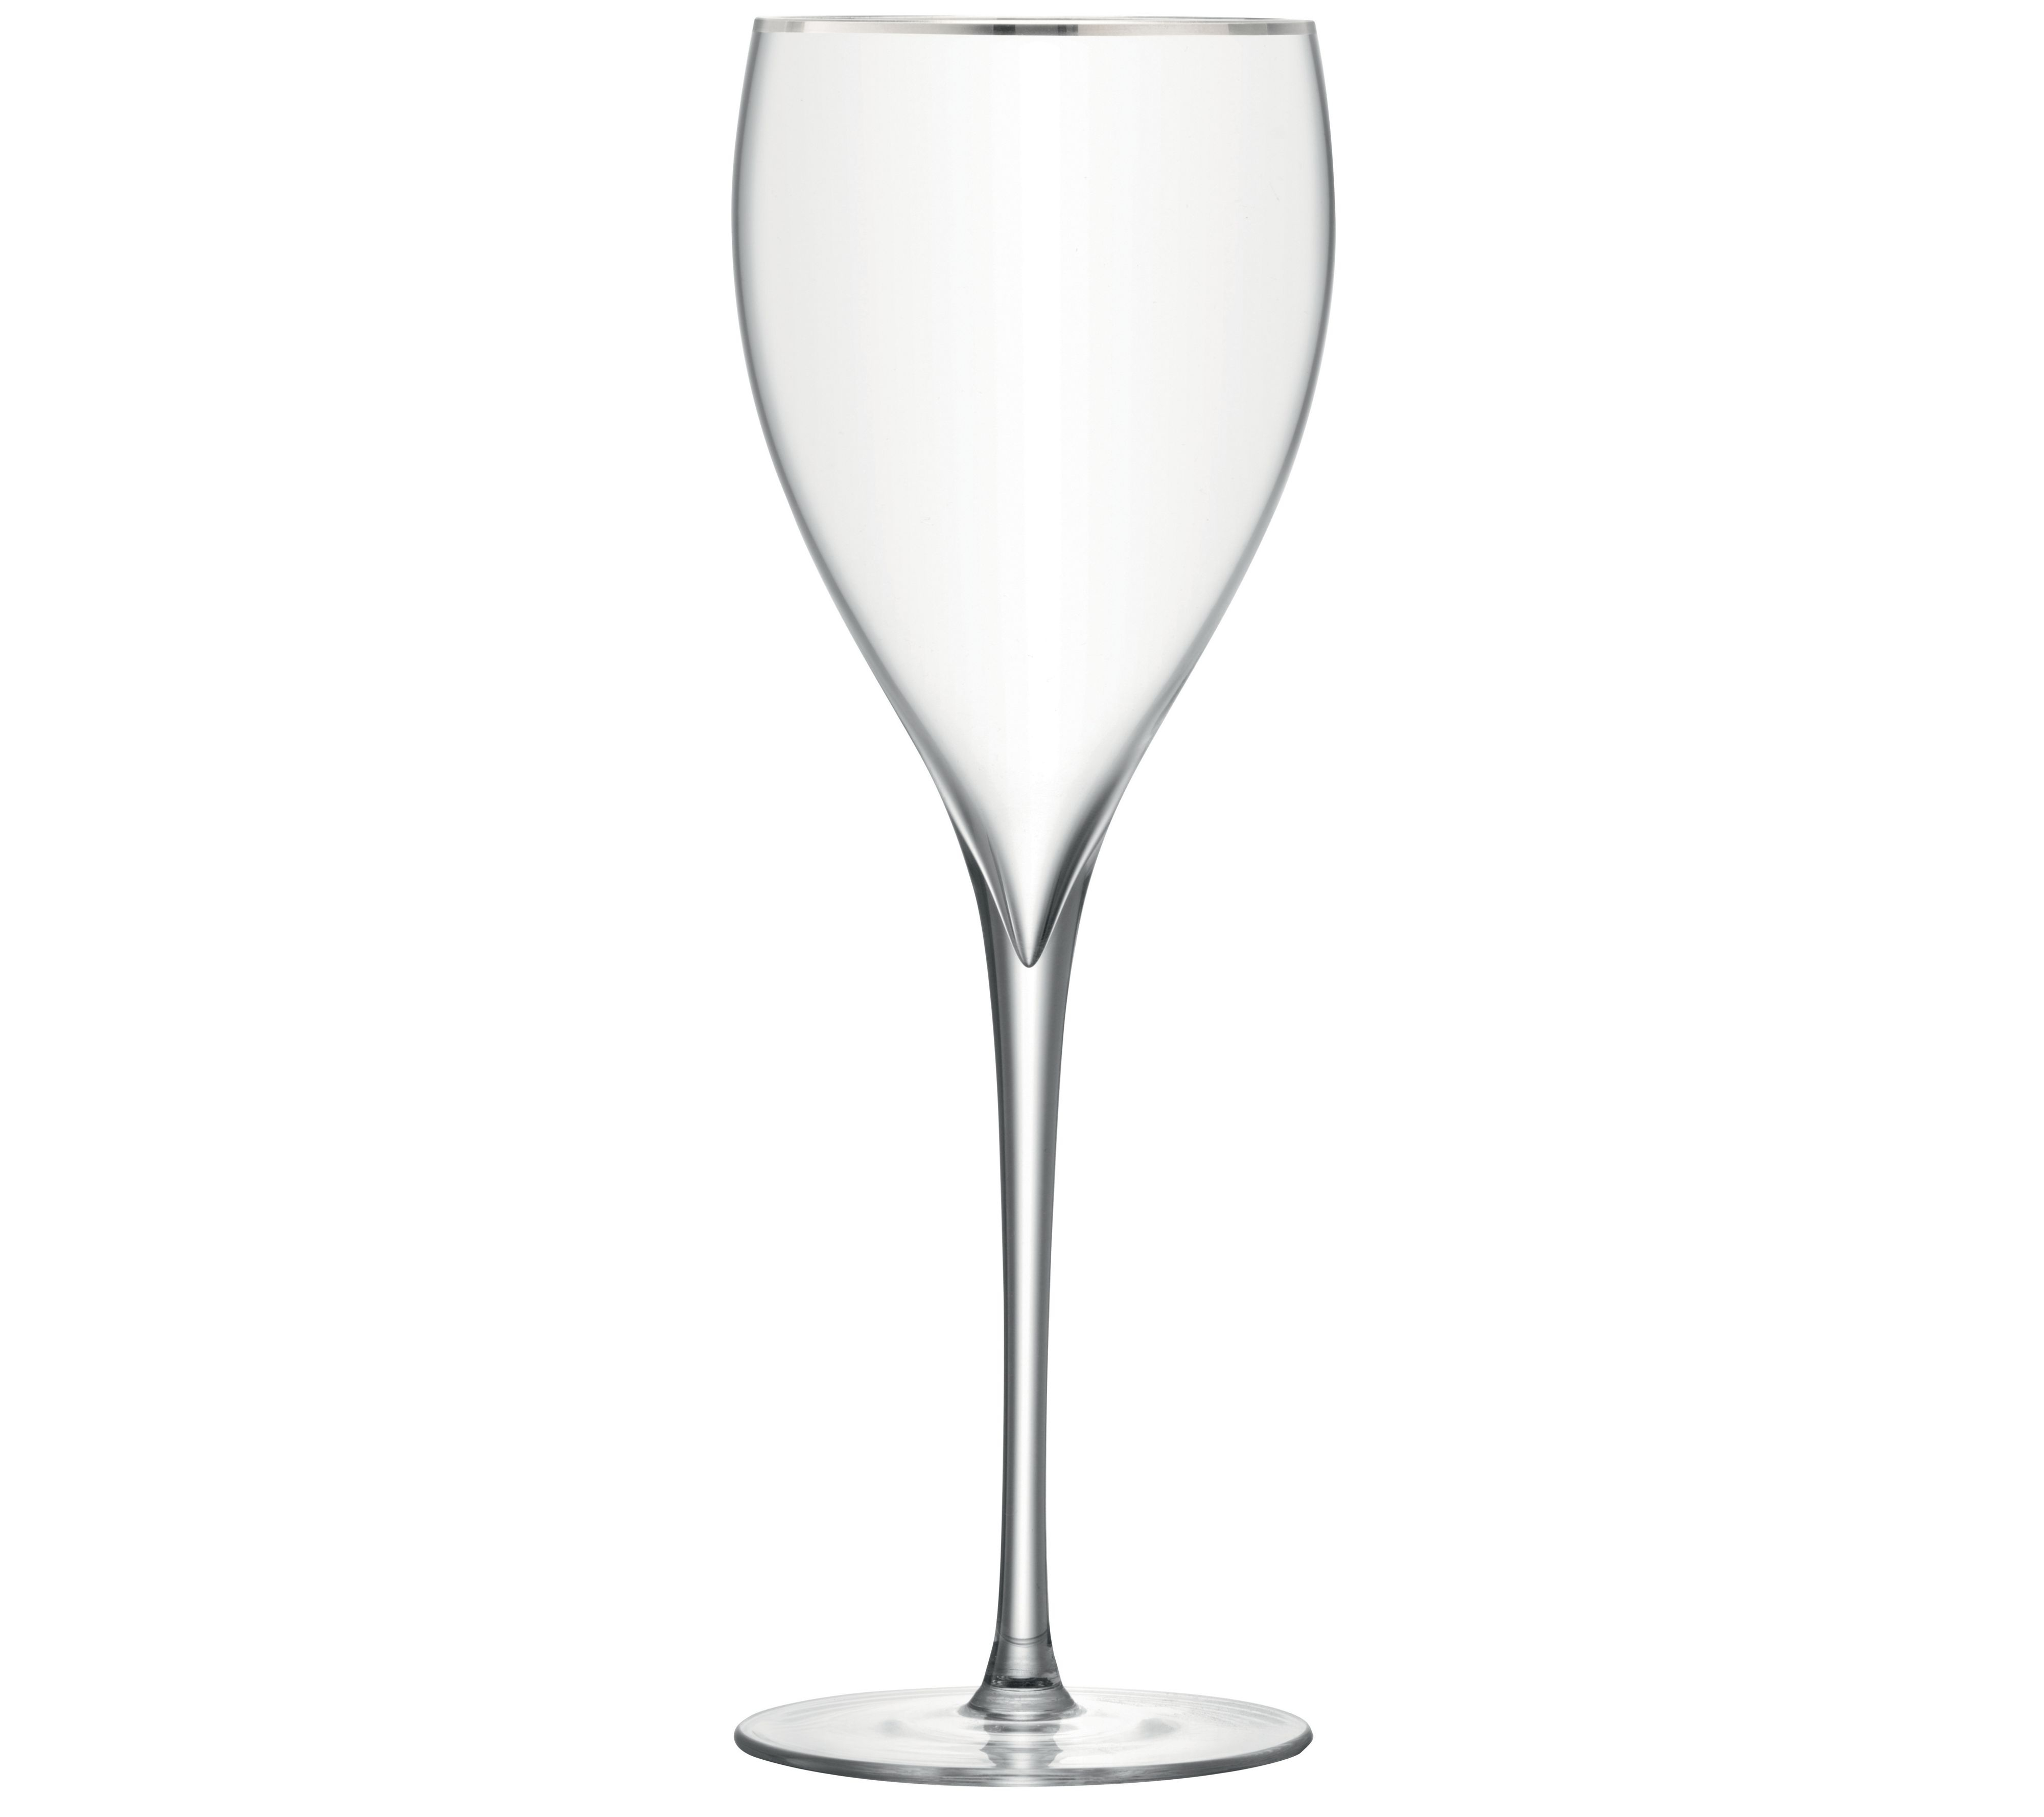 Savoy Platinum rim wine glass, set of 2